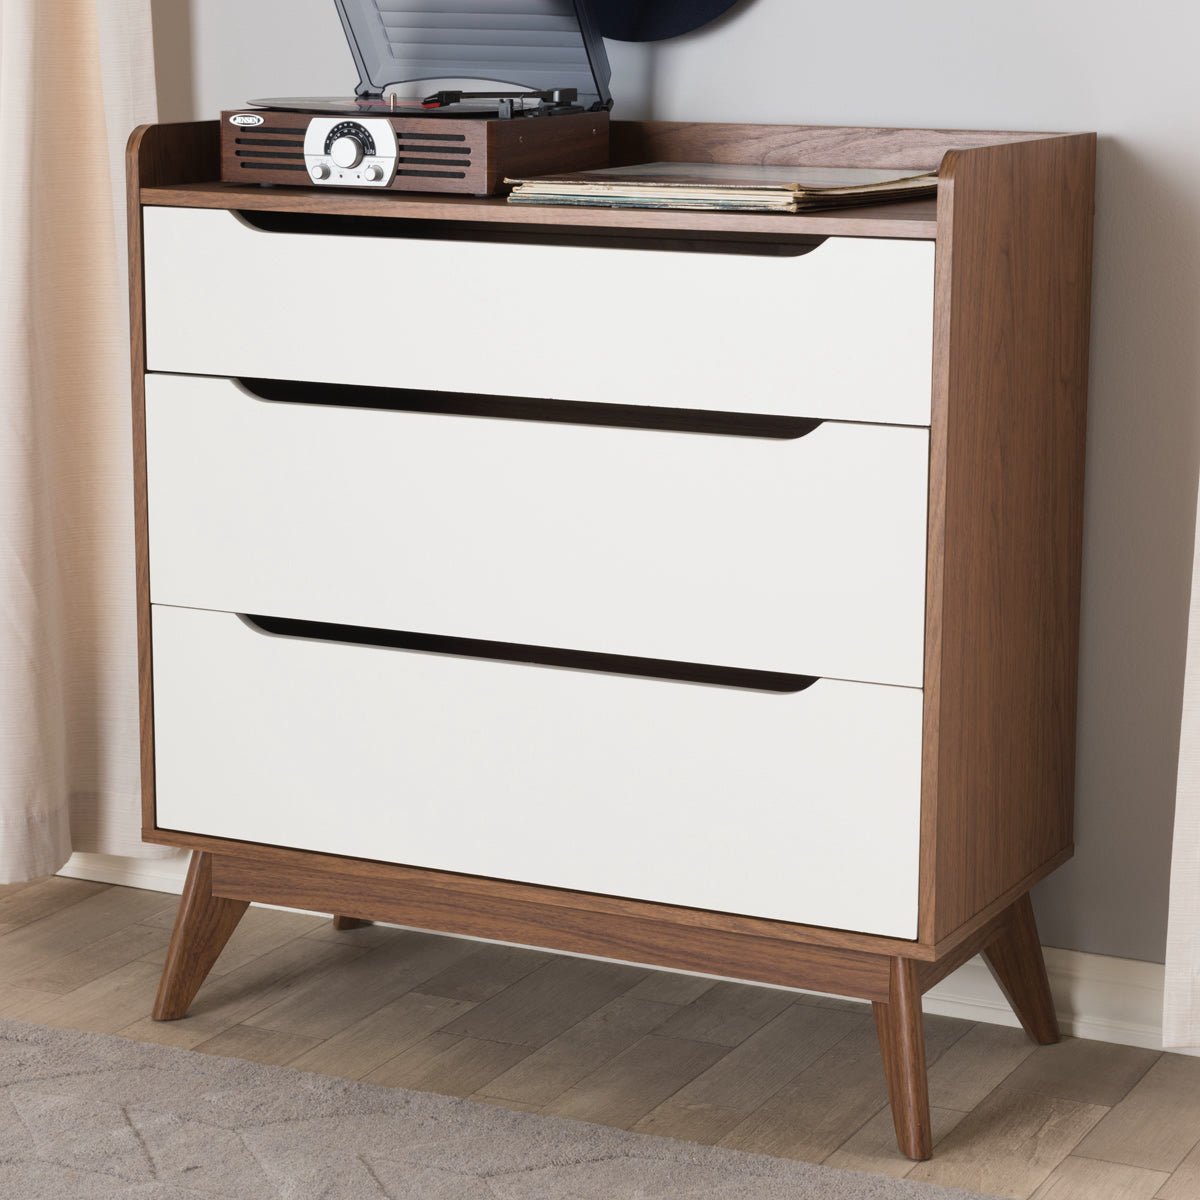 Baxton Studio Brighton Mid-Century Modern White and Walnut Wood 3-Drawer Storage Chest Baxton Studio-Dresser-Minimal And Modern - 1